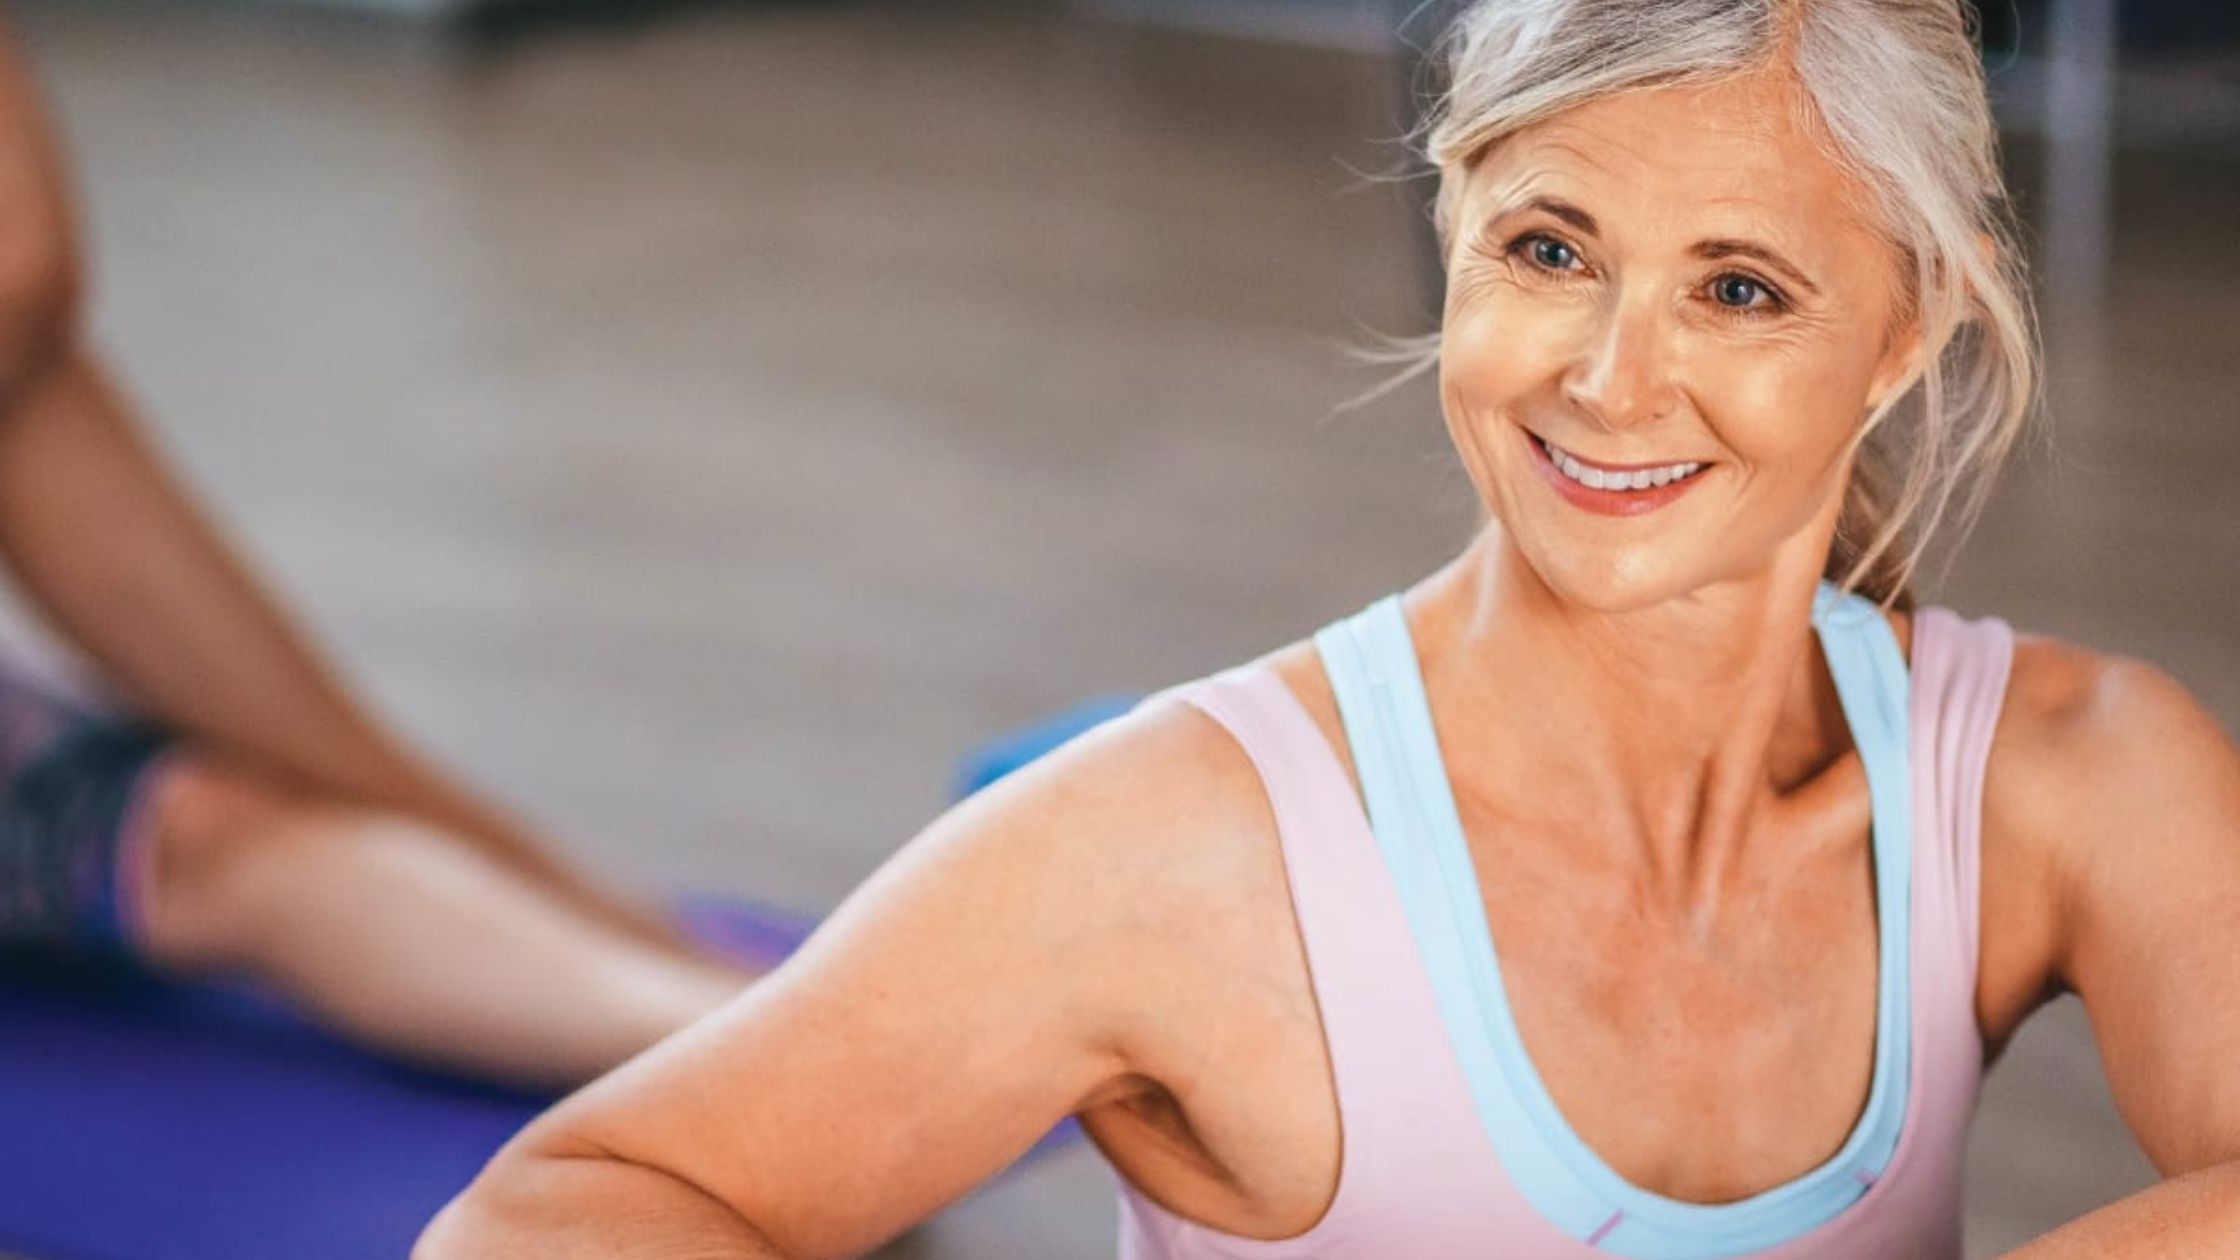 The Invisible Exercises to Strengthen the Pelvic Floor